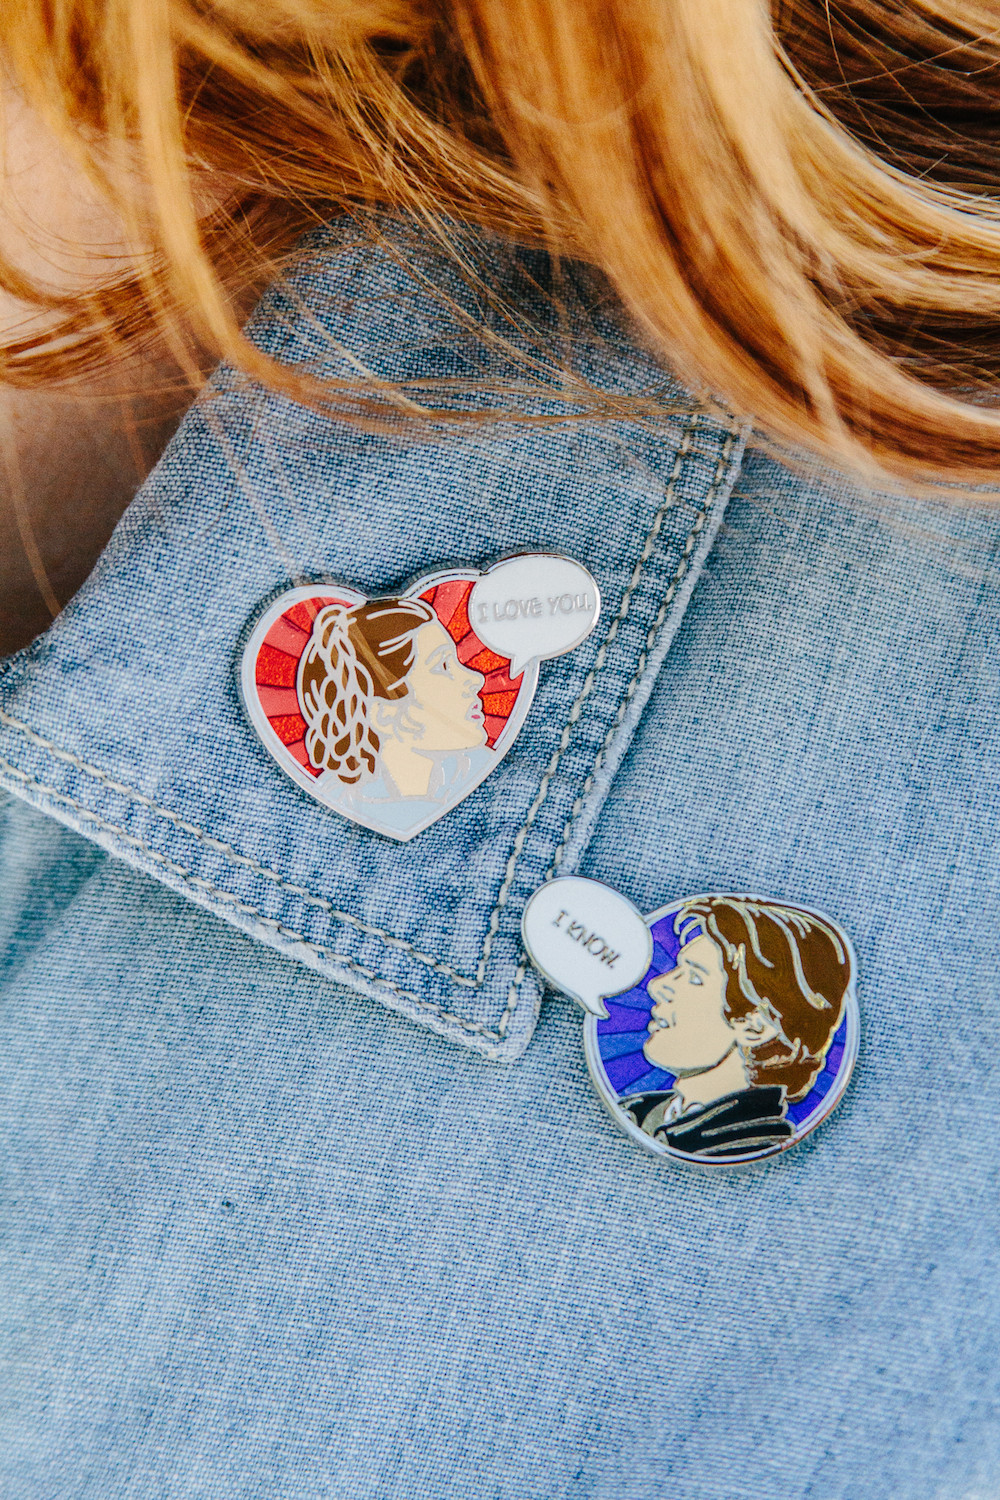 Styling pins and patches - The Kessel Runway